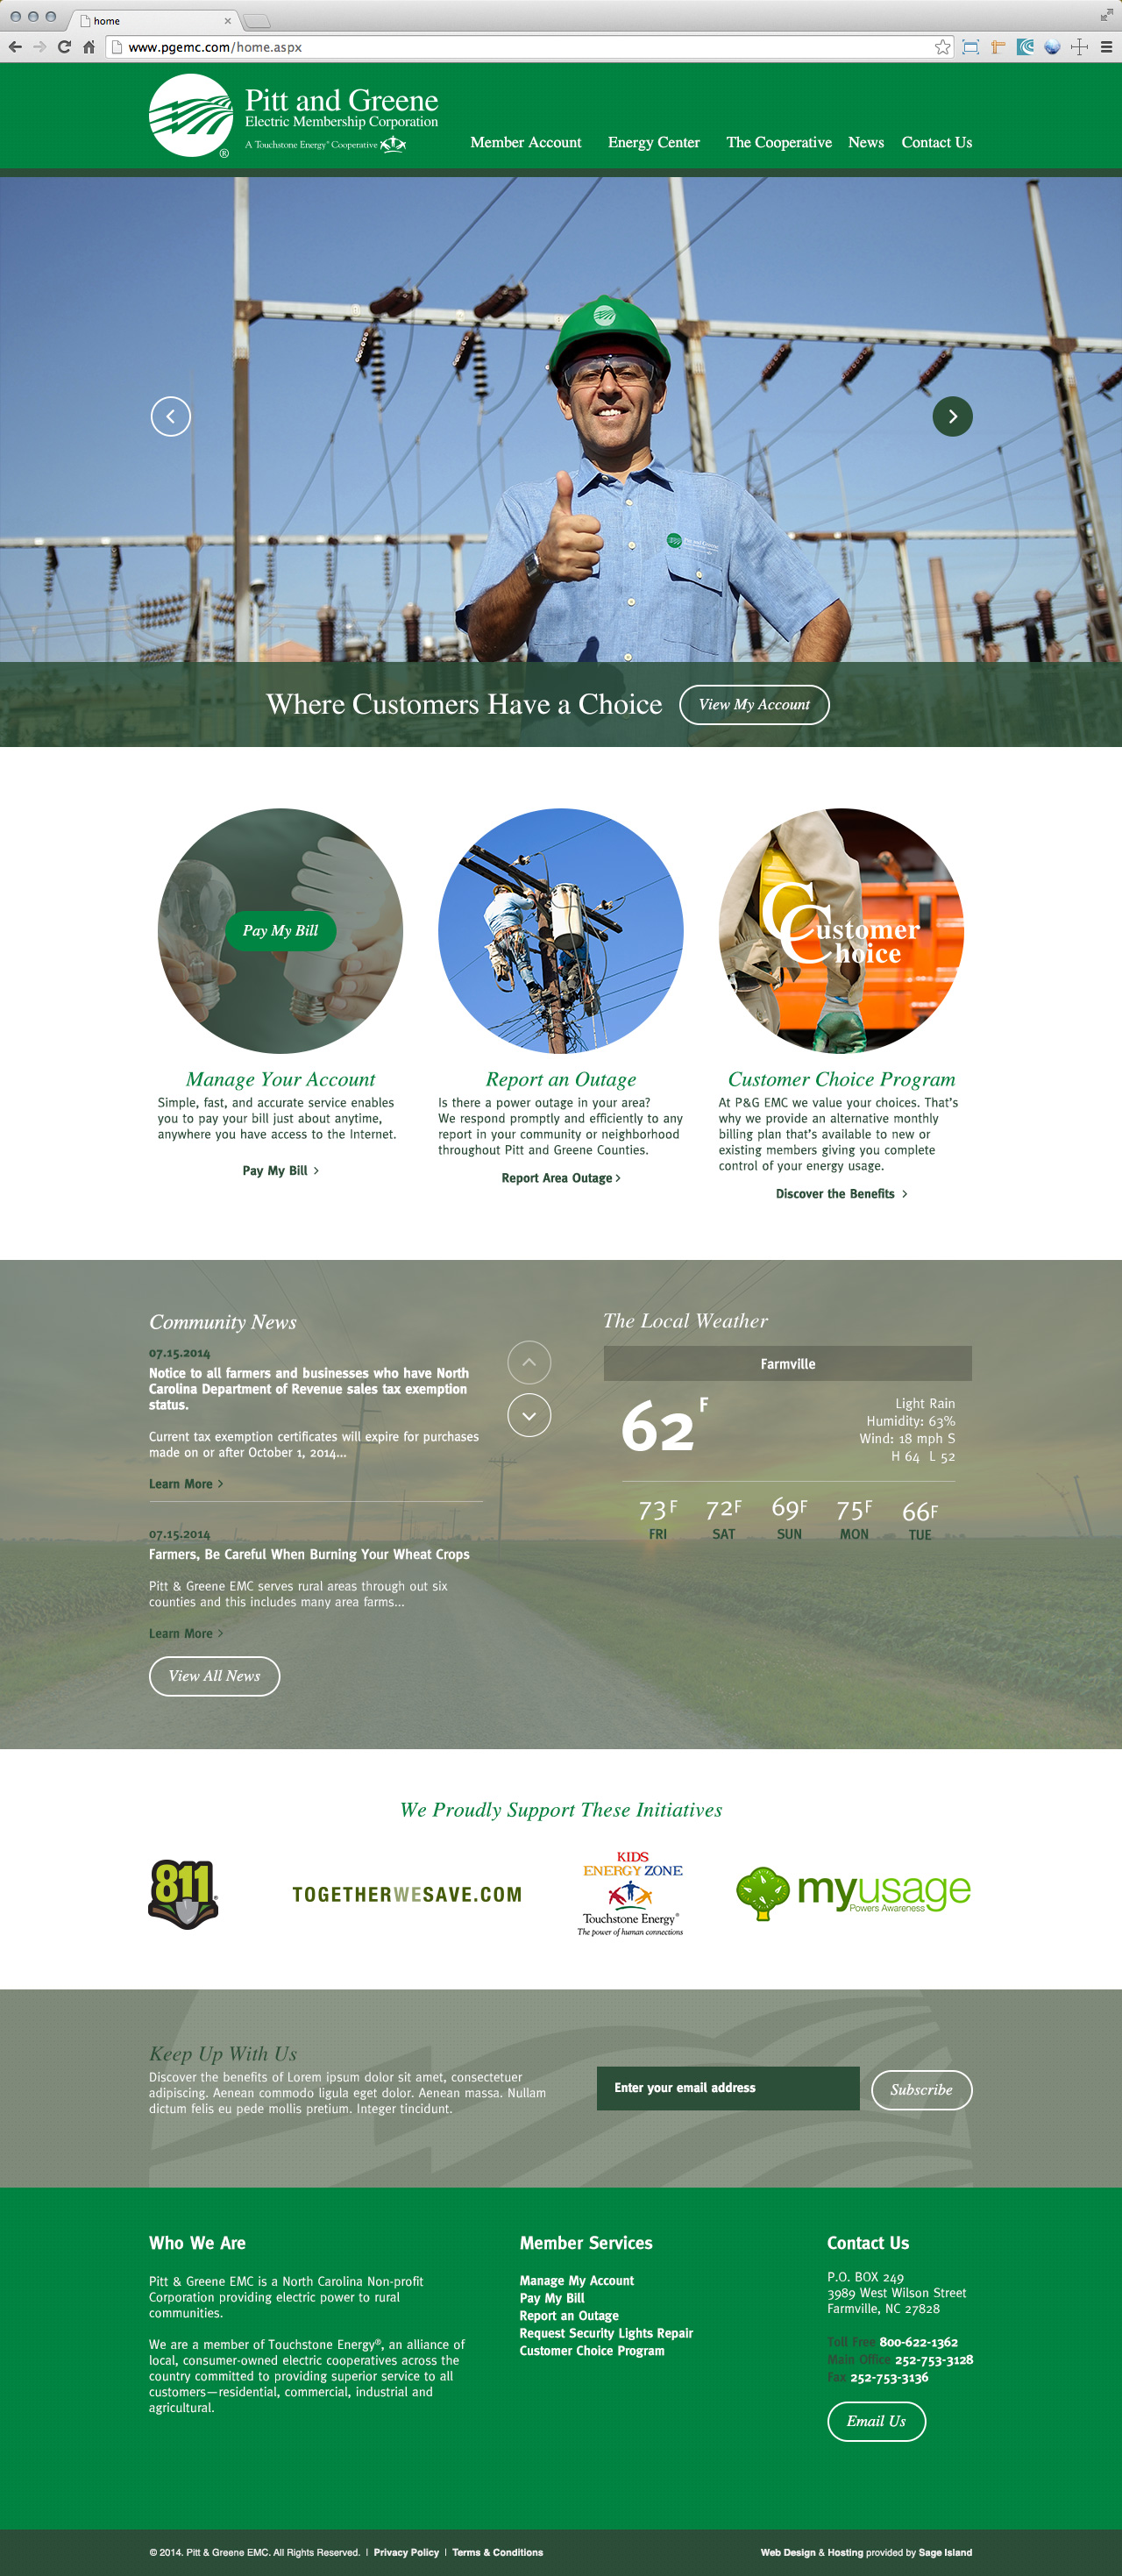 pitt-greene-emc-website-design